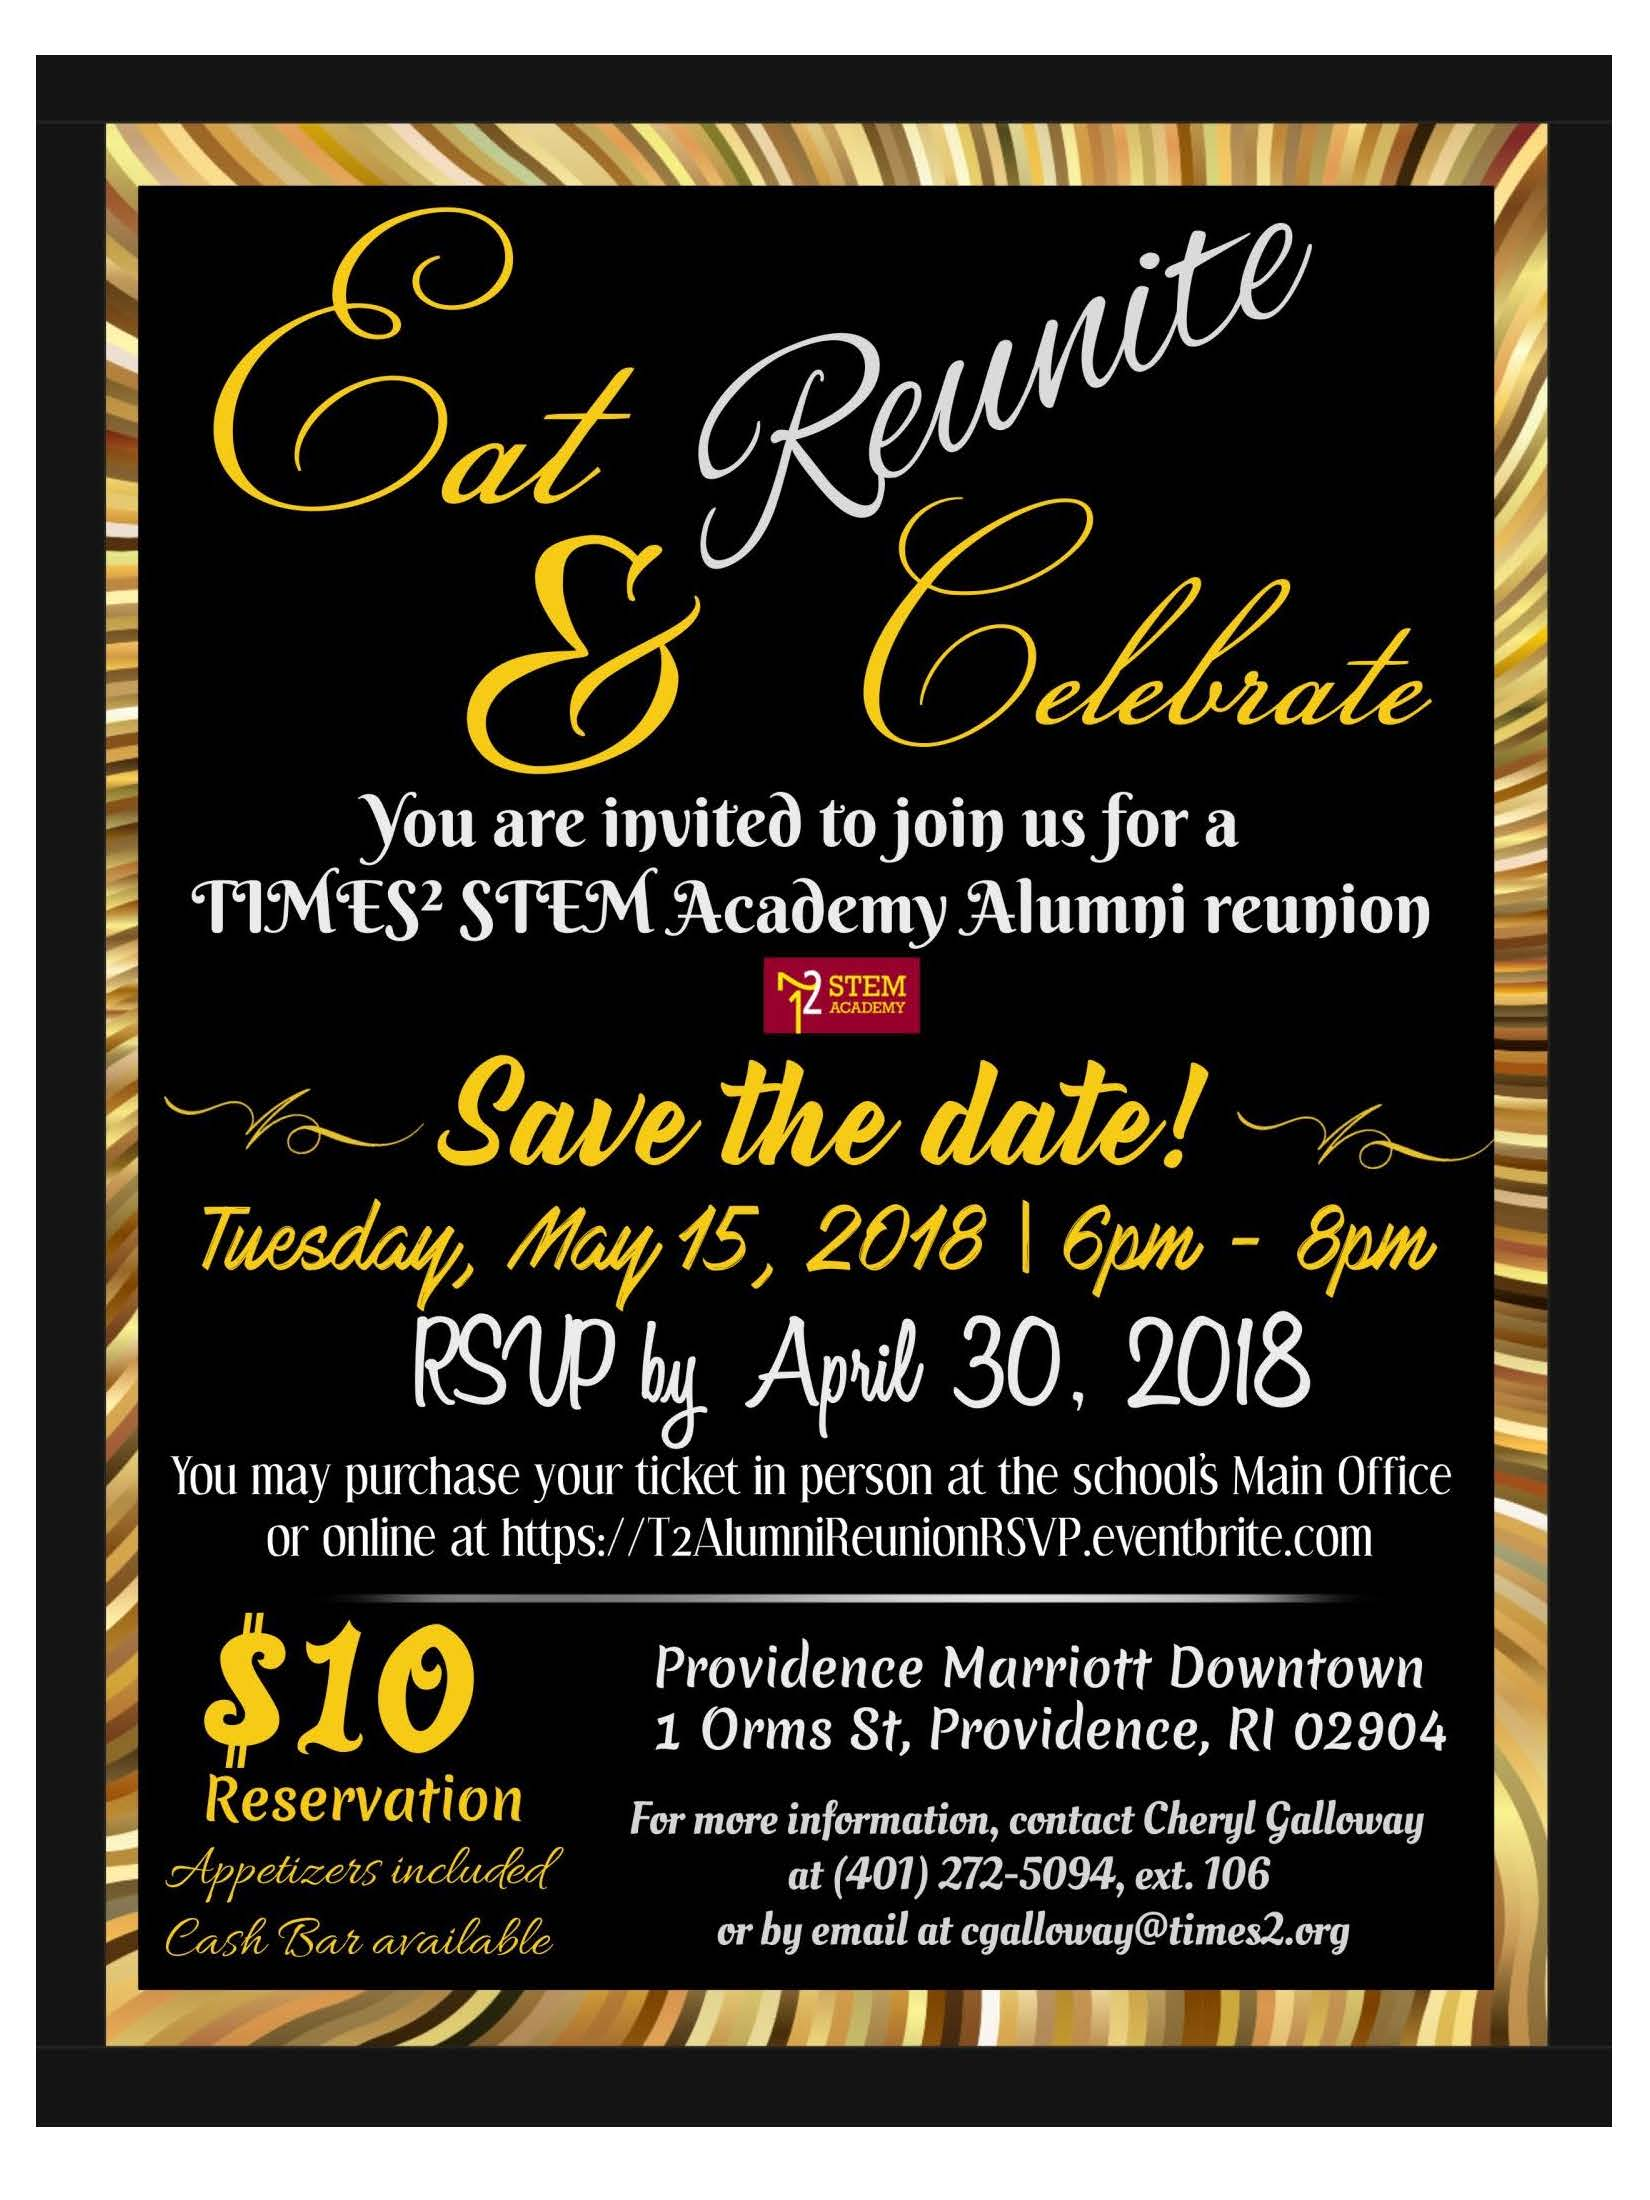 Alumni-Reunion-Invitation-1.jpg